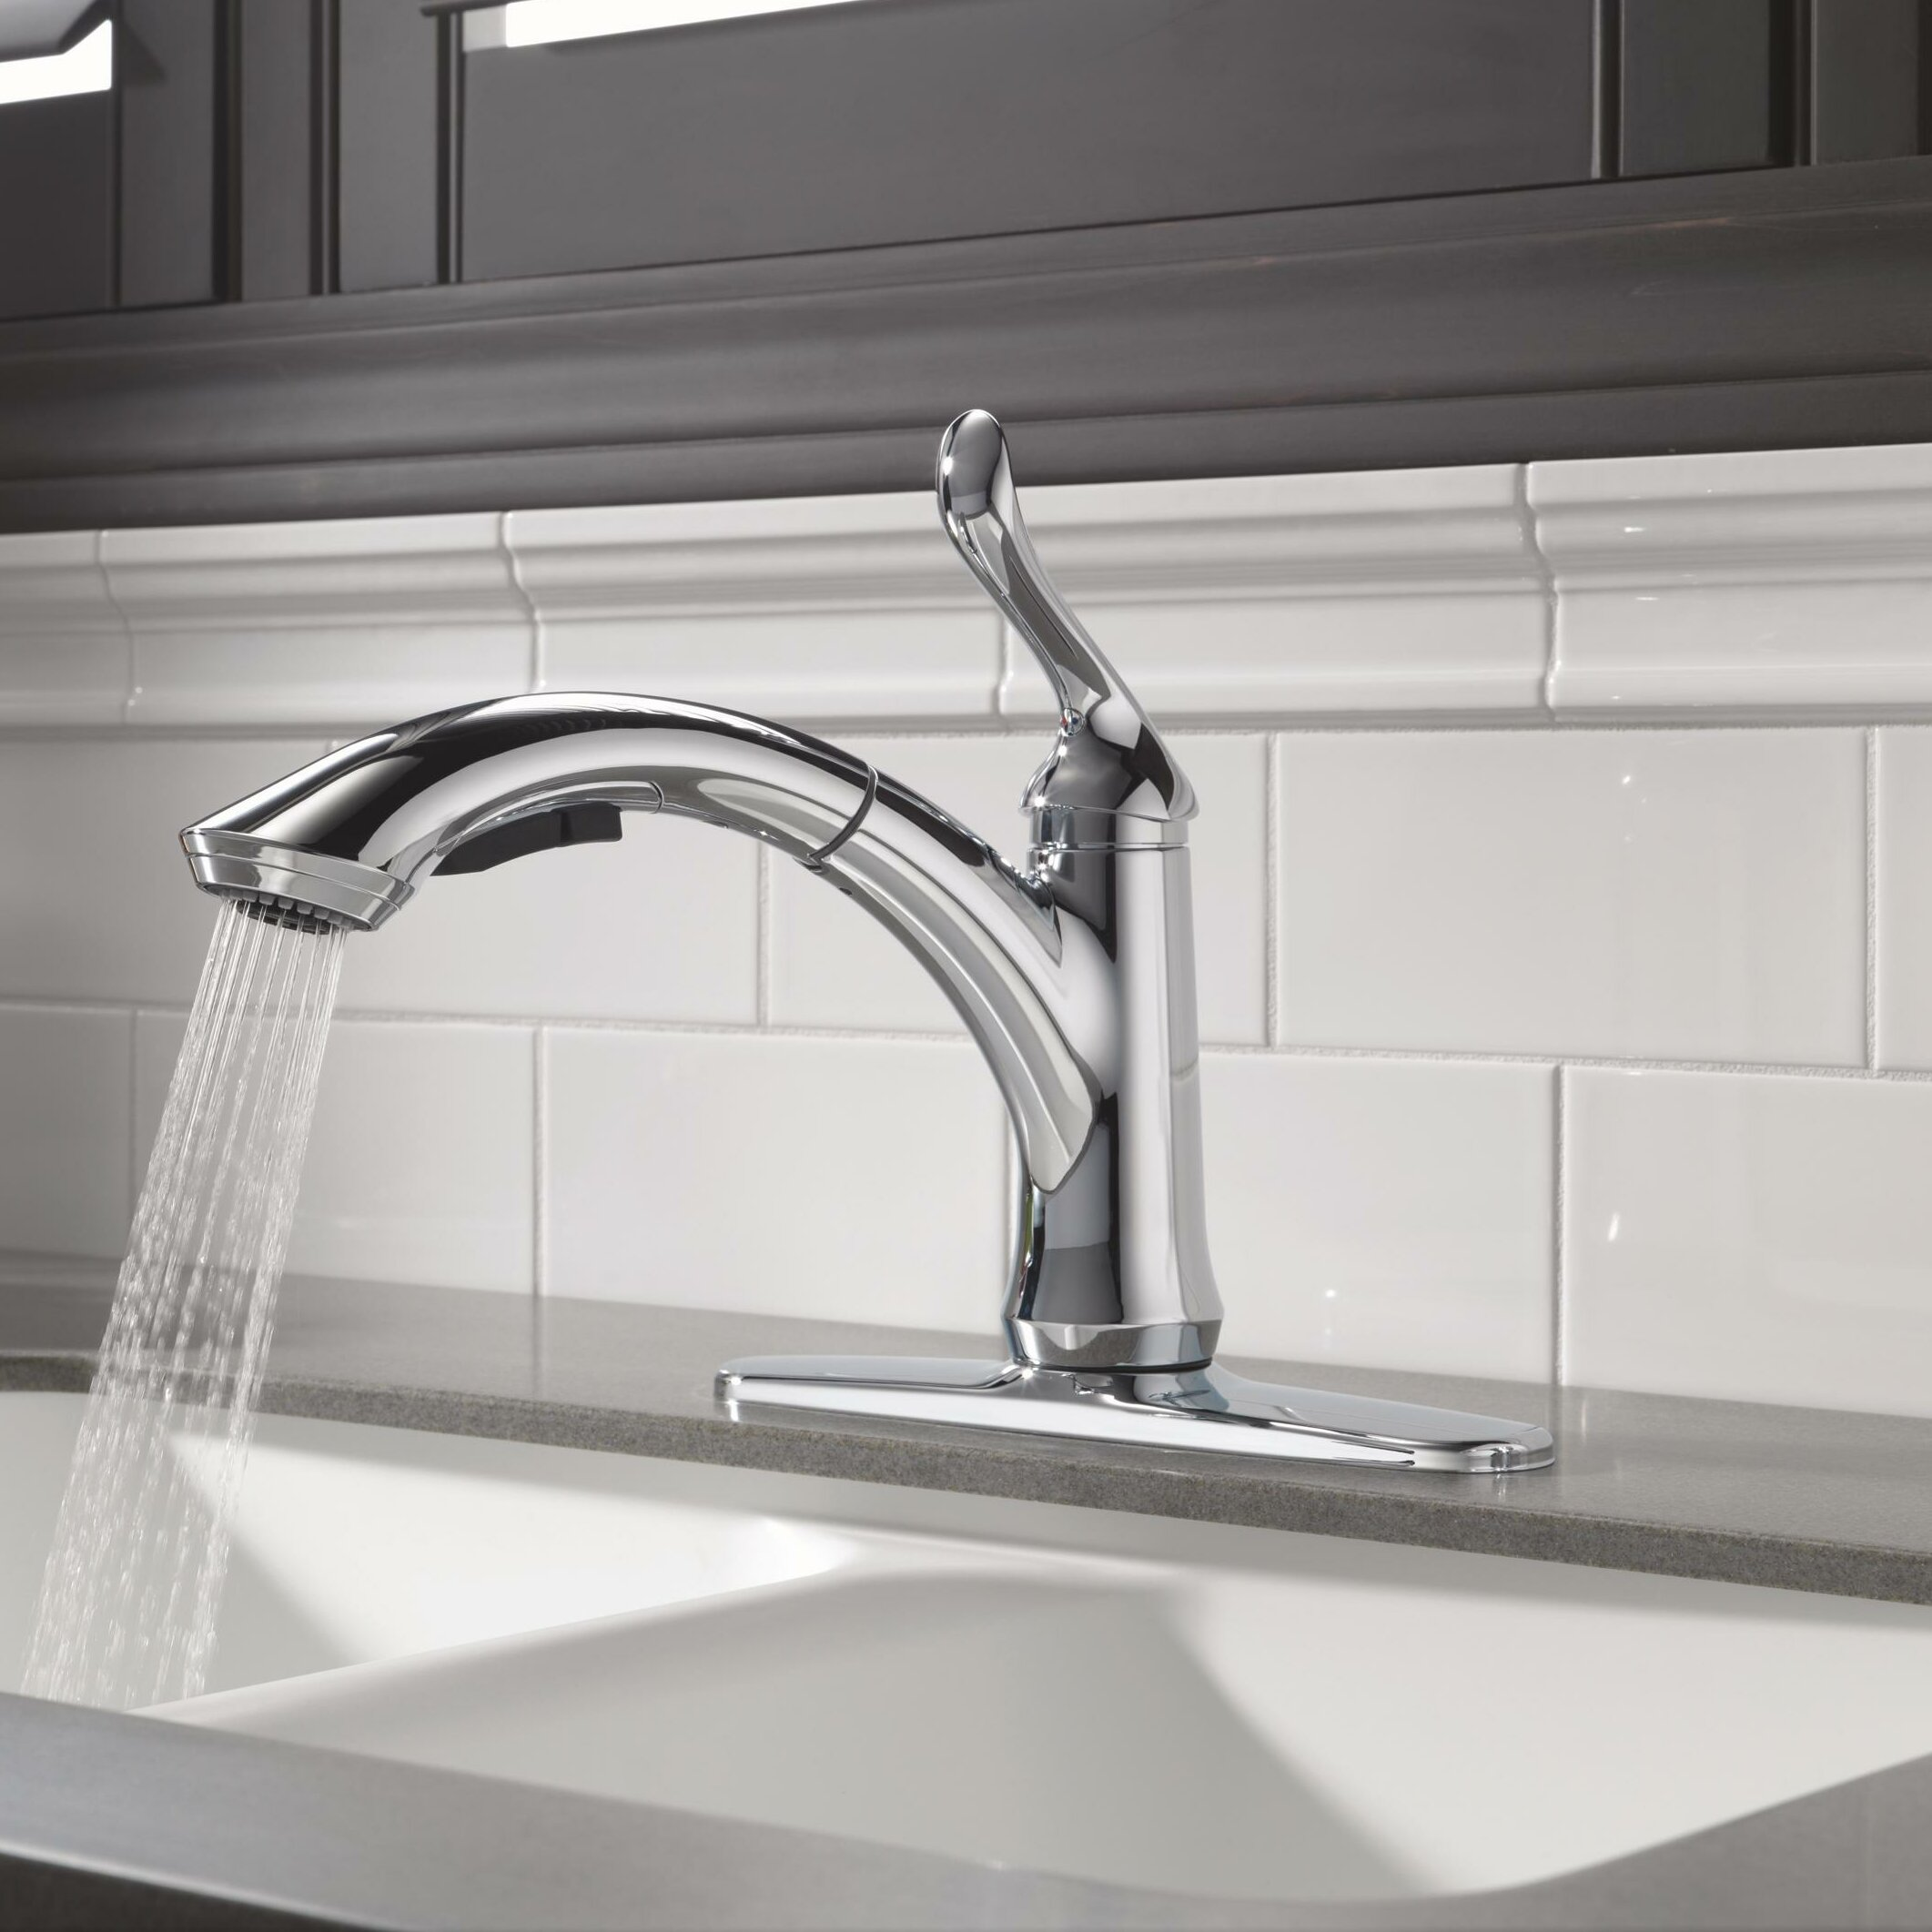 Linden single handle kitchen faucet